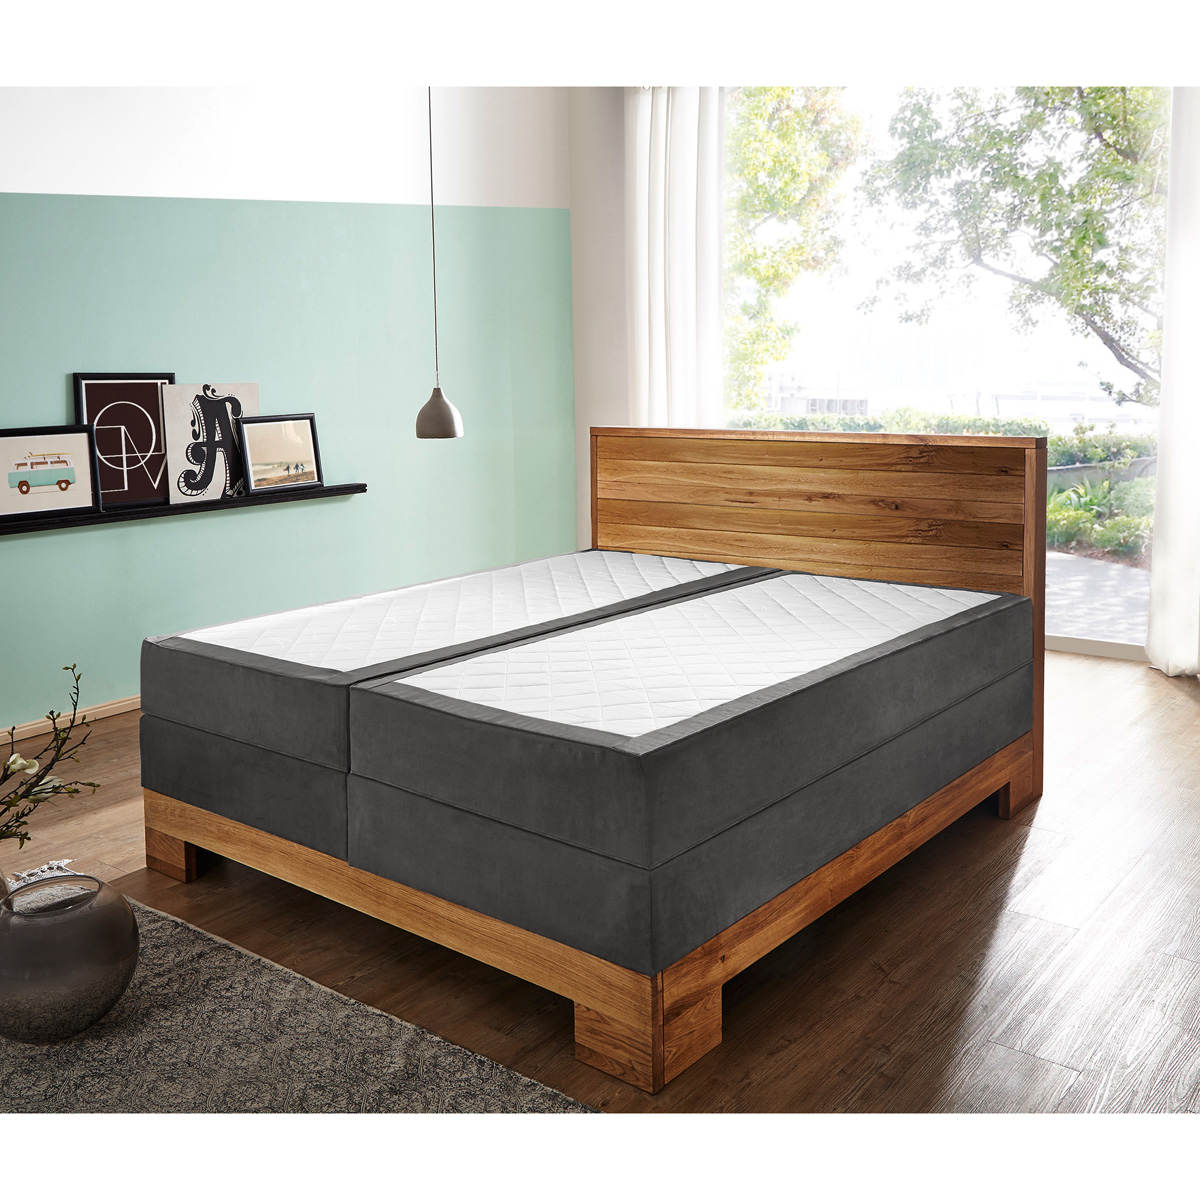 Boxspringbett Your Home Boxspringbett Grau Stoff Boxspringbett Bellevue Stoff